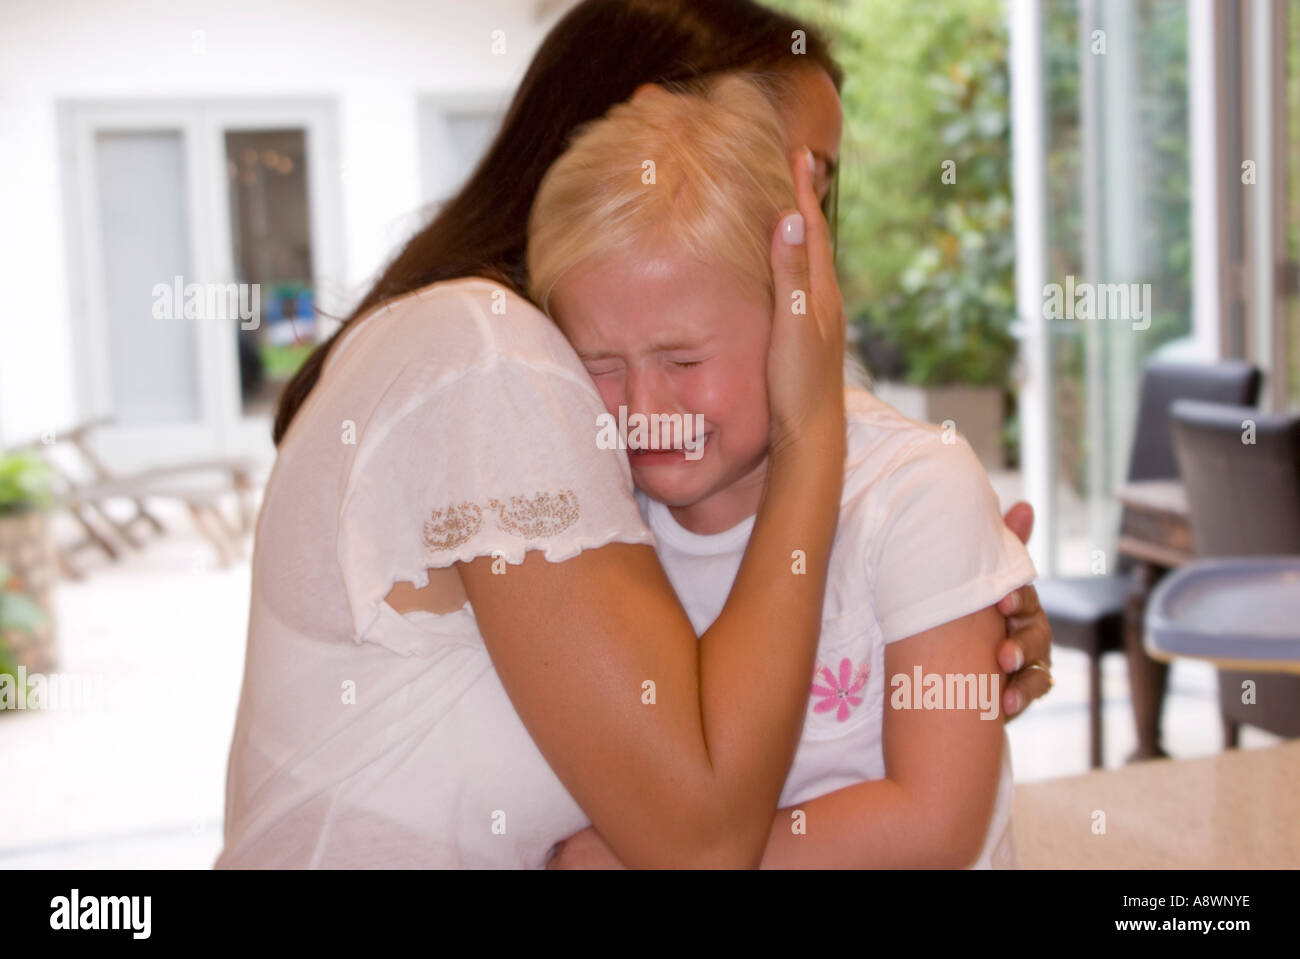 mother comforting crying child - Stock Image